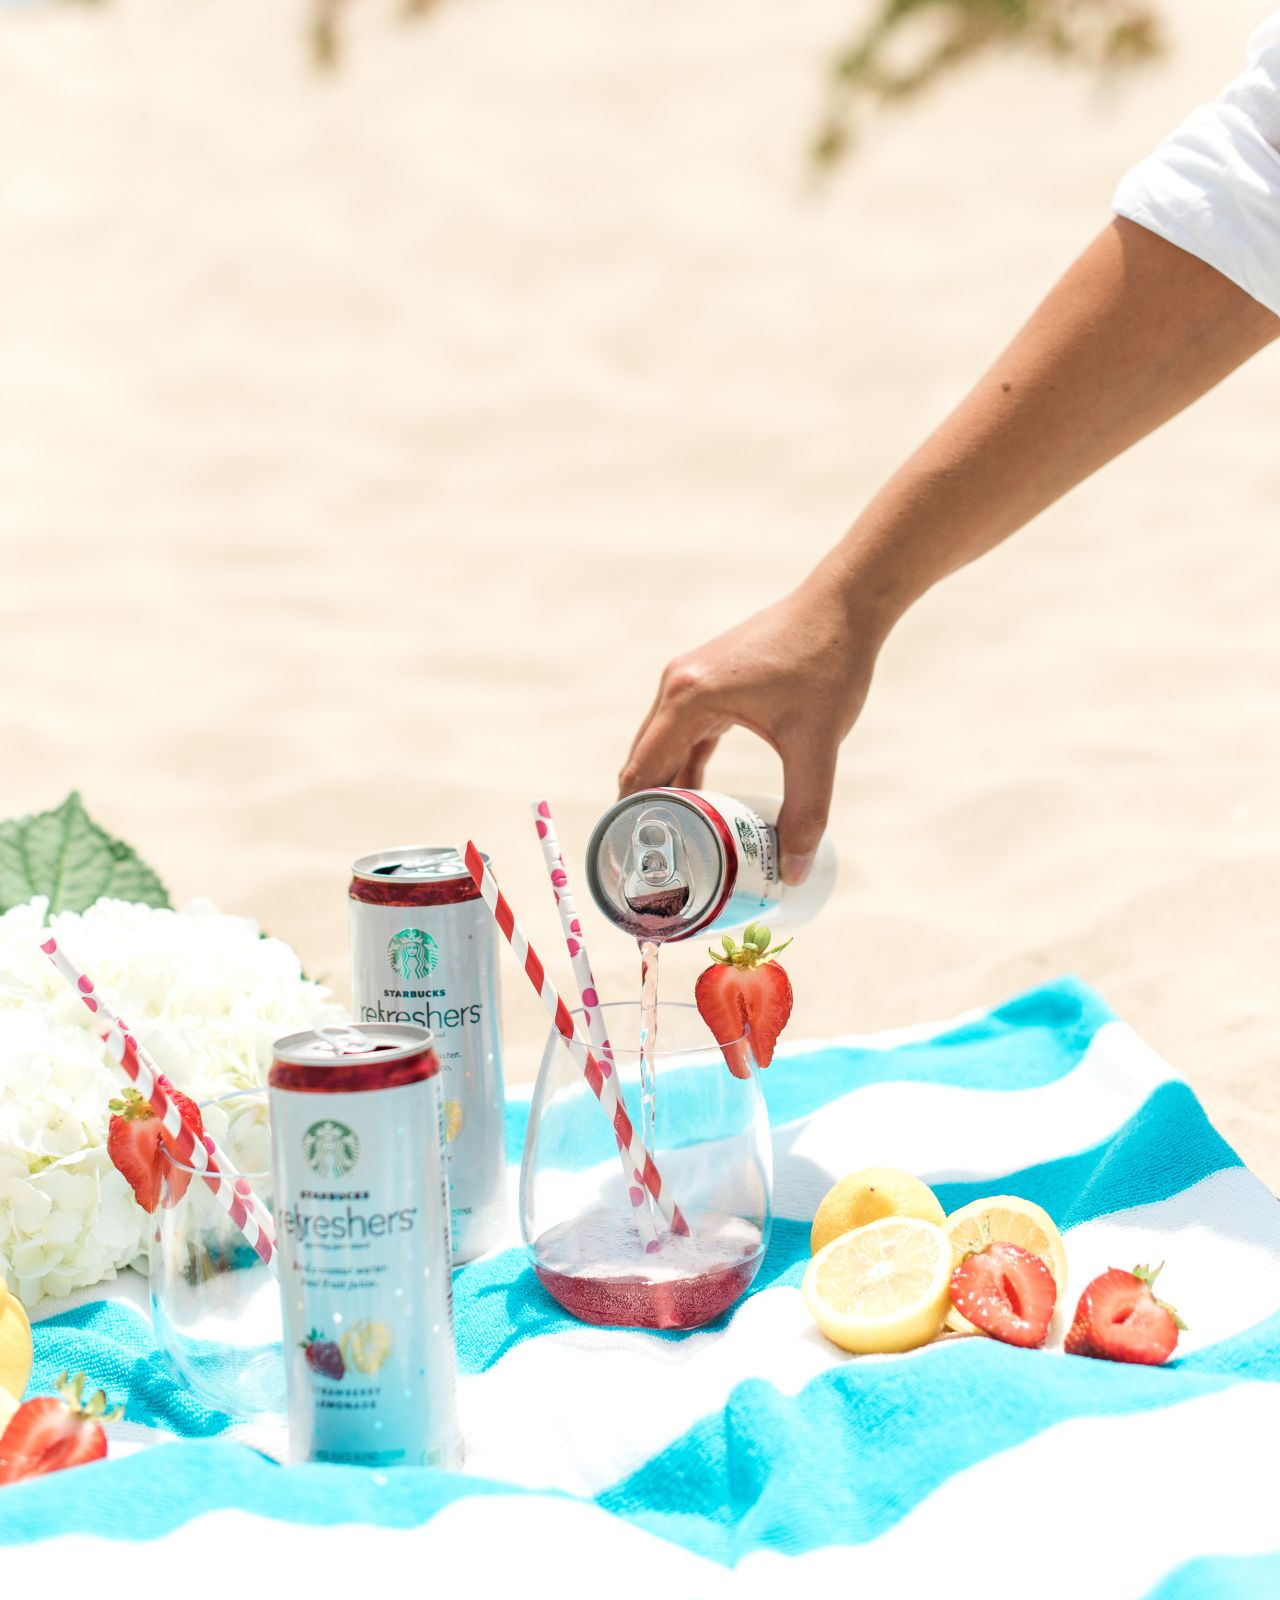 #Sponsored by @Starbucks. Were making some tasty swaps for some of our favorite indulgences this summer and these yummy #StarbucksRefreshers are making it super easy! Head to the link in our bio for 5 ways to make your week a little healthier #ad #onIBTtoday! (Photo by @Sanazphotography)